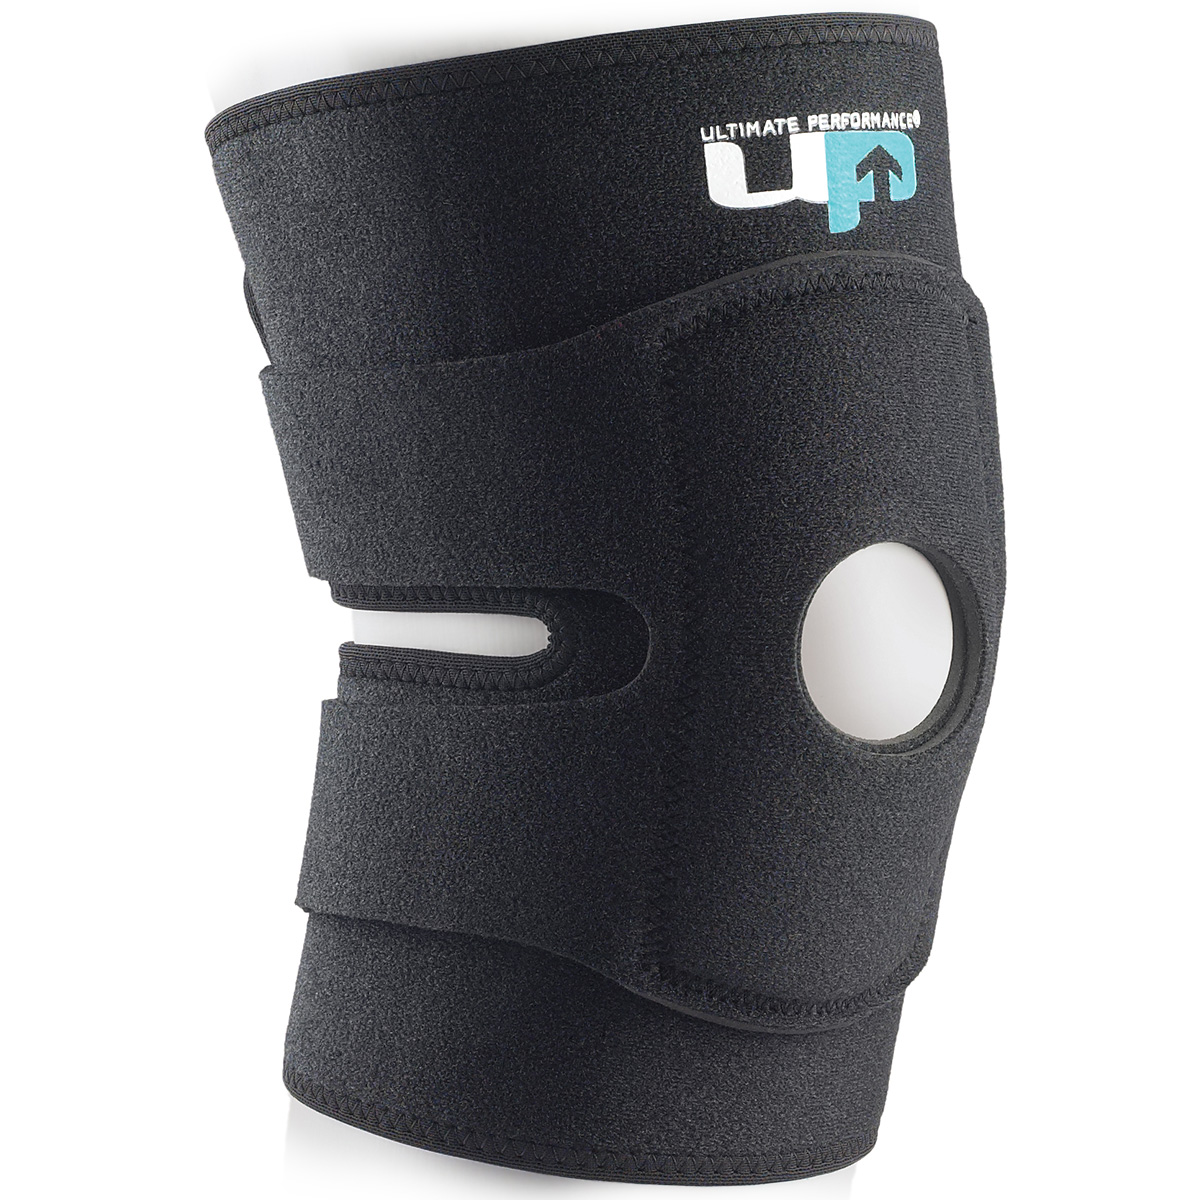 f478088297 Details about ULTIMATE PERFORMANCE NEOPRENE SPORT KNEE SUPPORT ADJUSTABLE  WRAP-AROUND SLEEVE